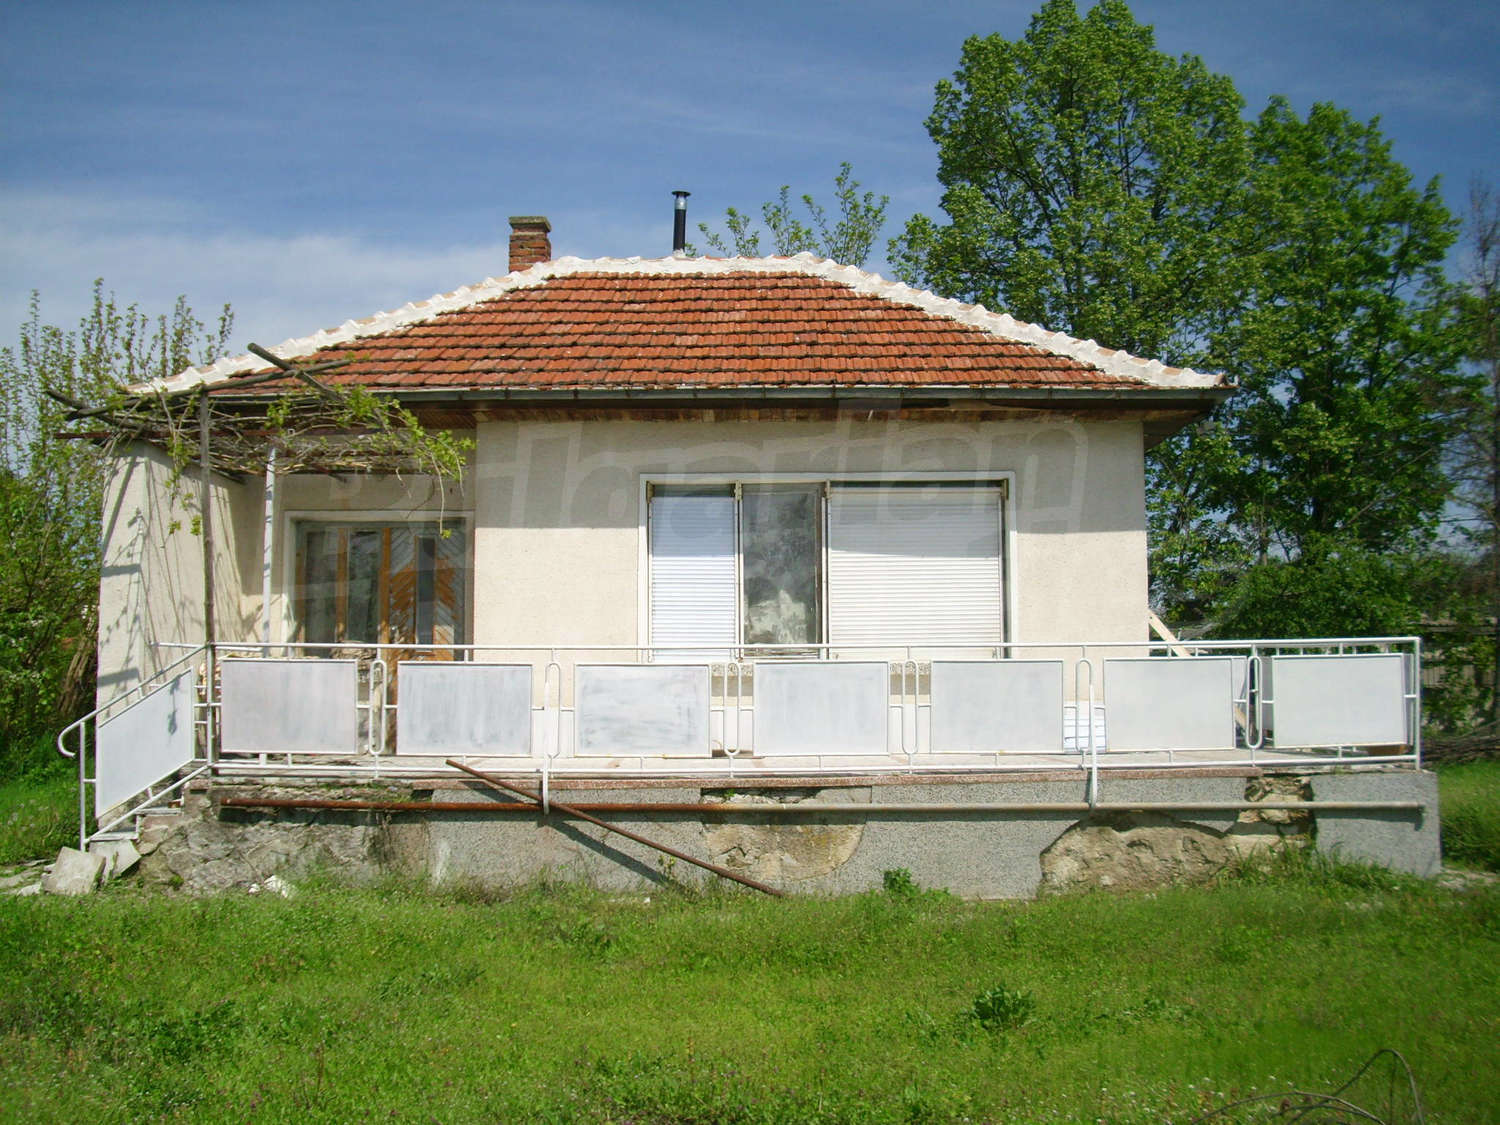 House for sale near plovdiv bulgaria nice house with for Big nice houses for sale